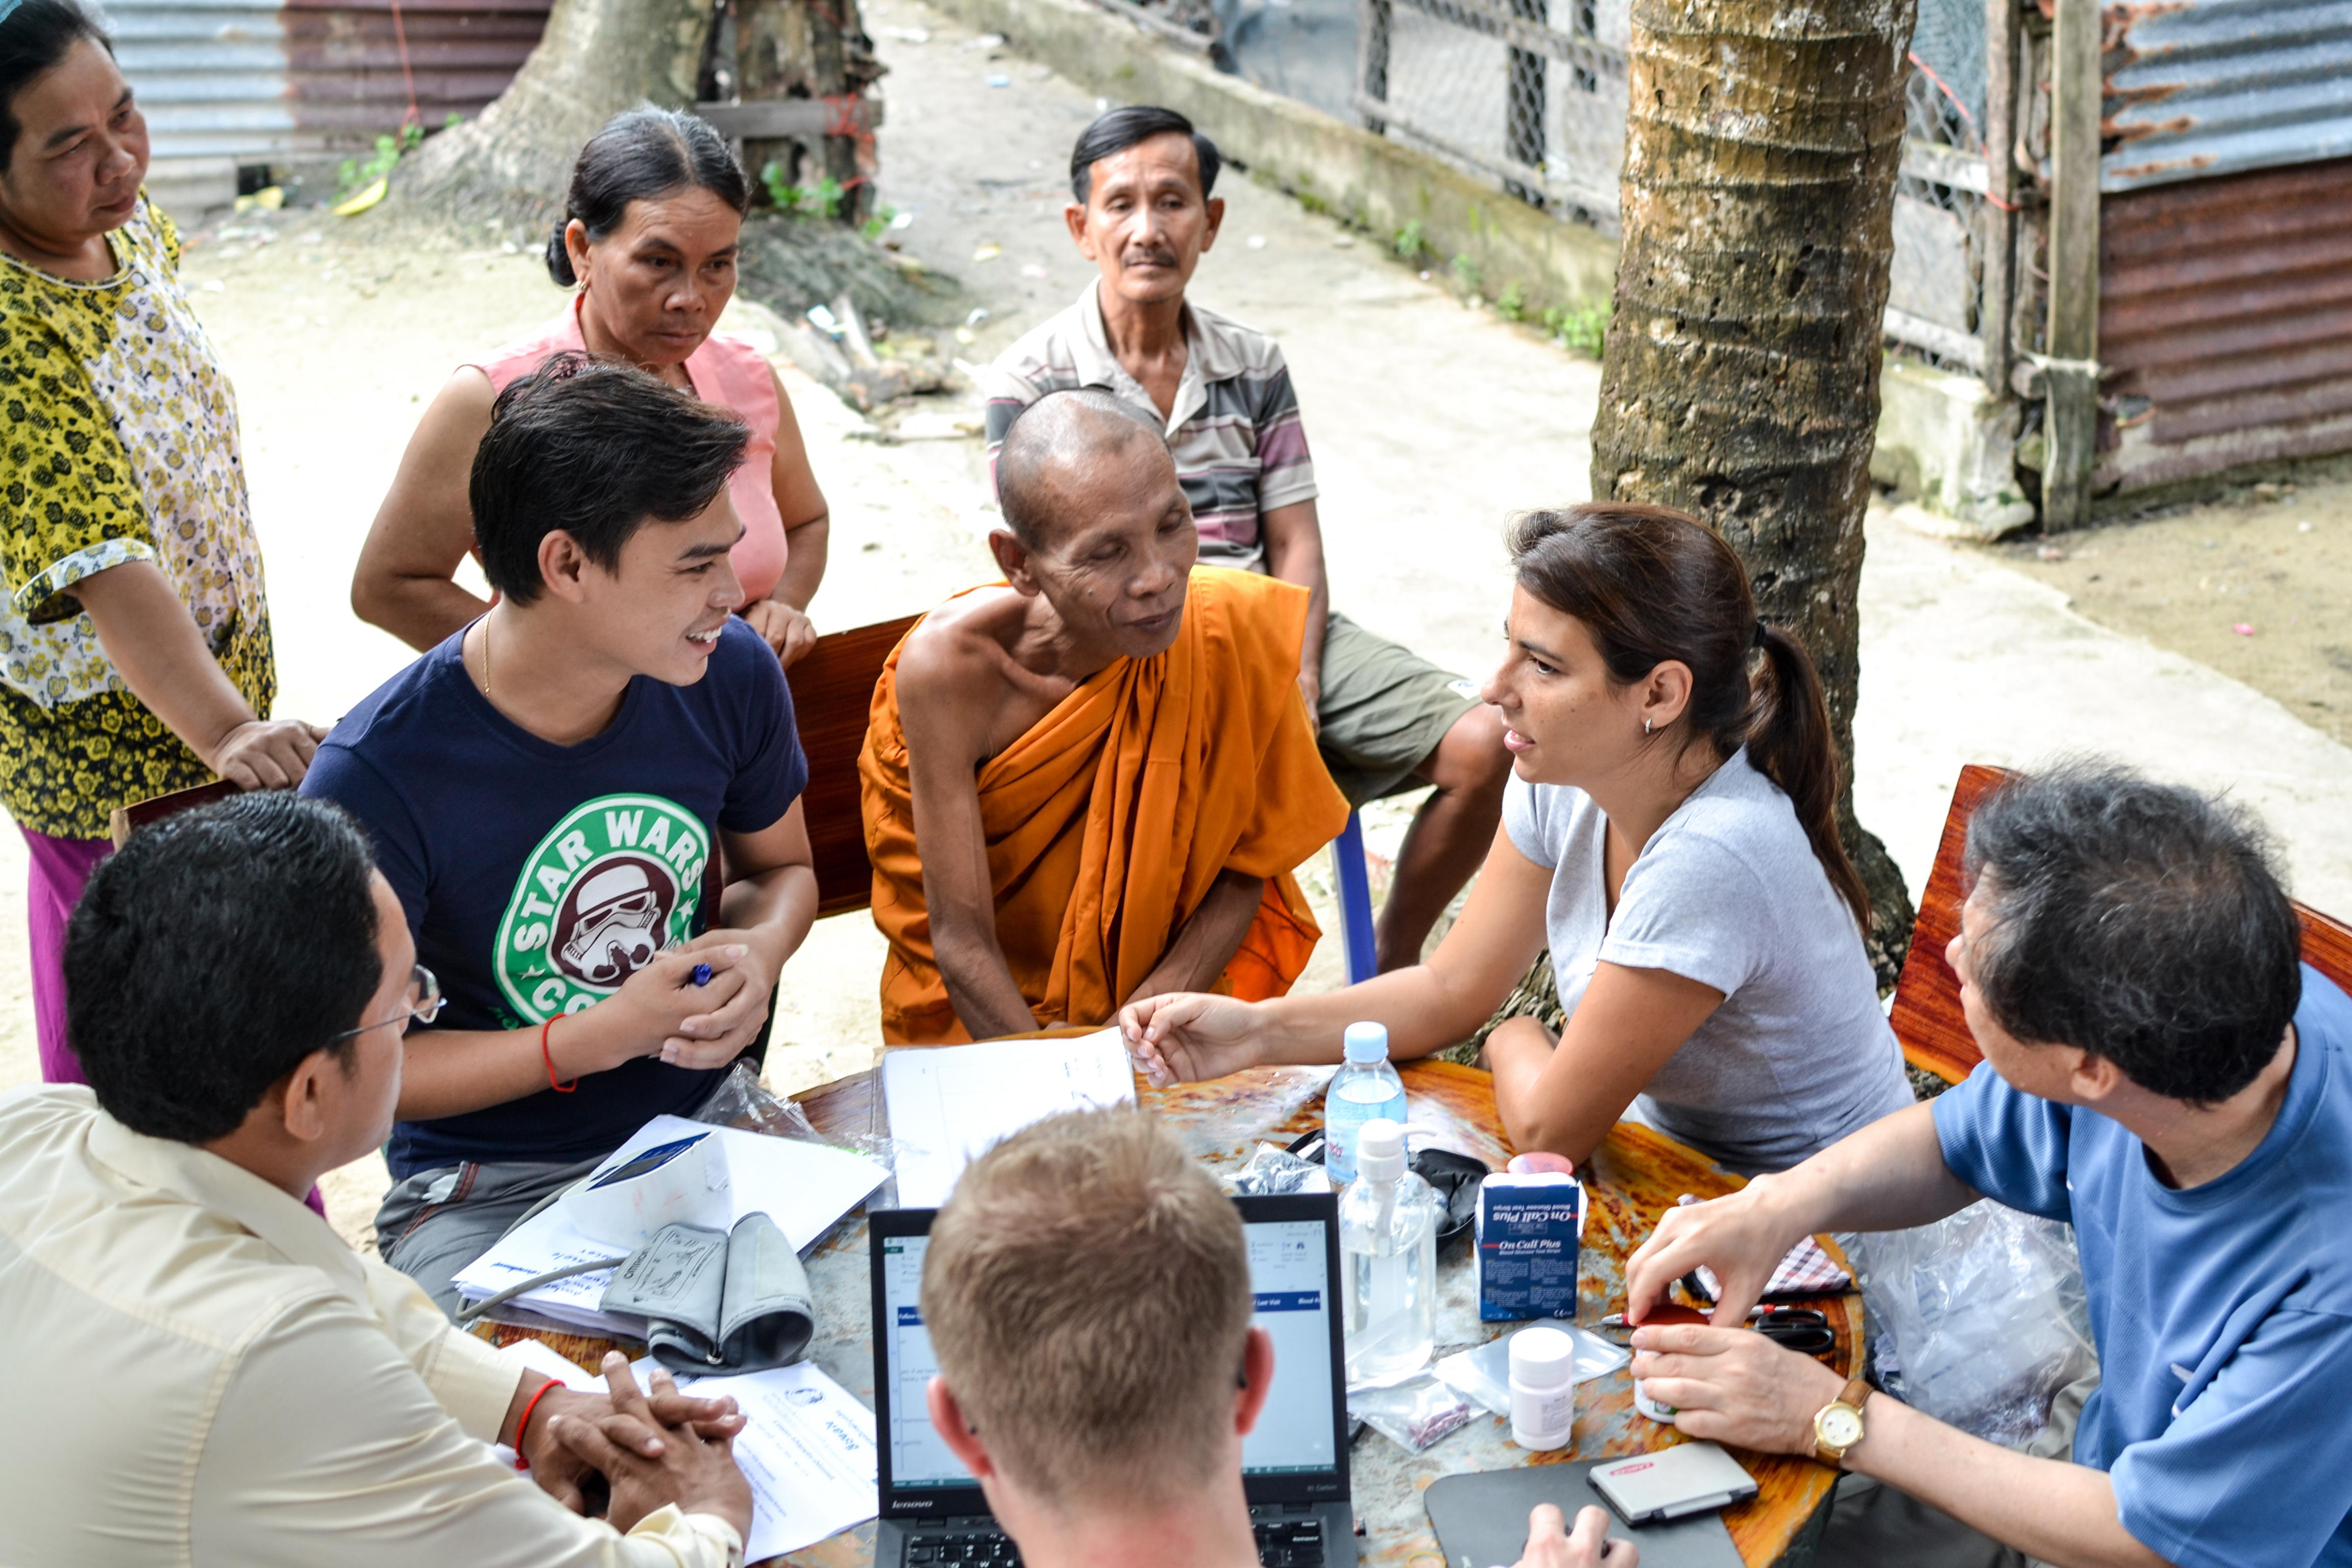 An intern is seen talking to locals during an outreach whilst she completes her public health internship in Cambodia with Projects Abroad.